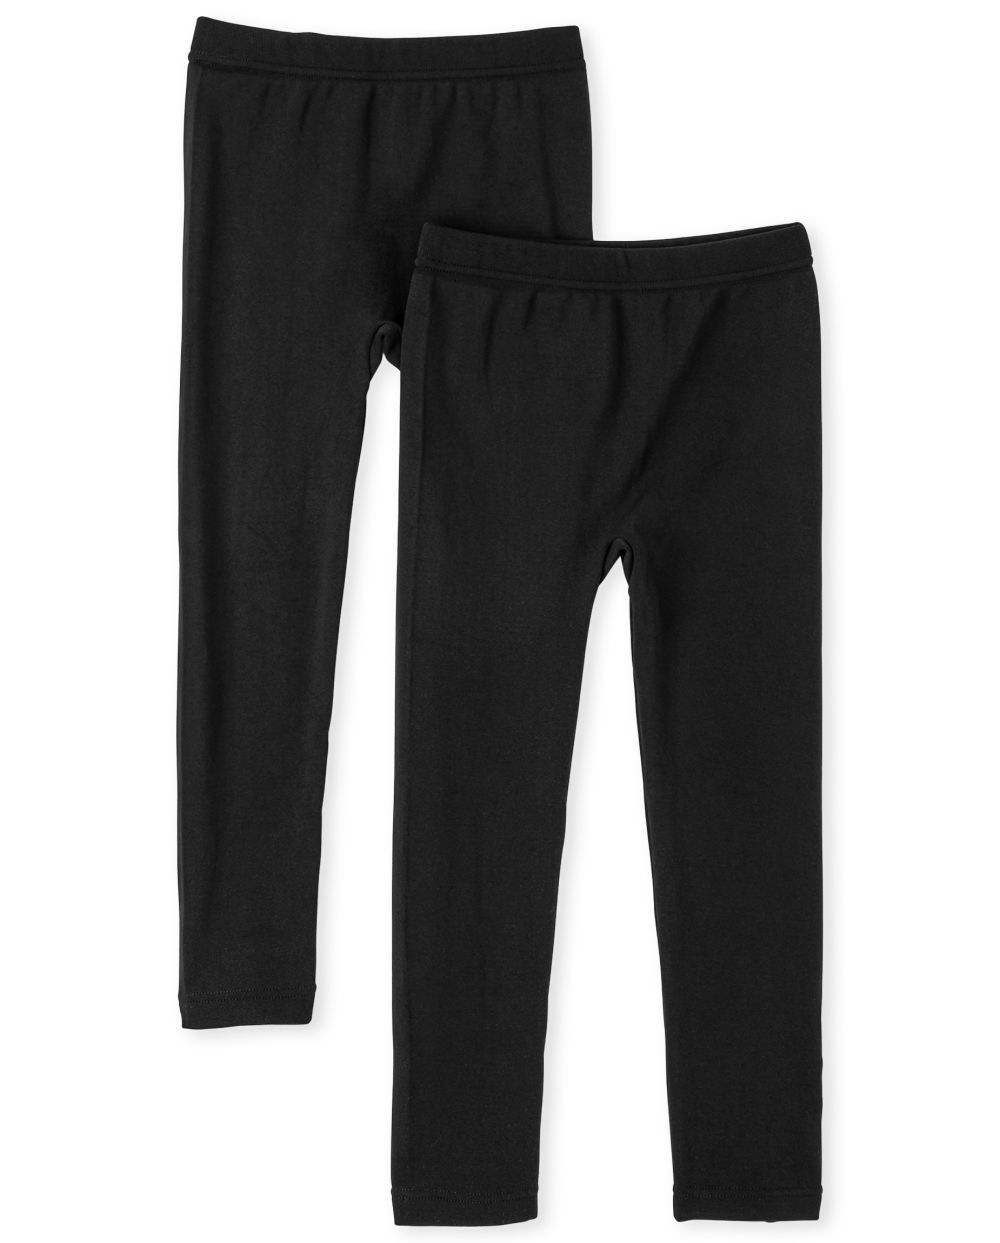 Girls Fleece Lined Leggings 2-Pack